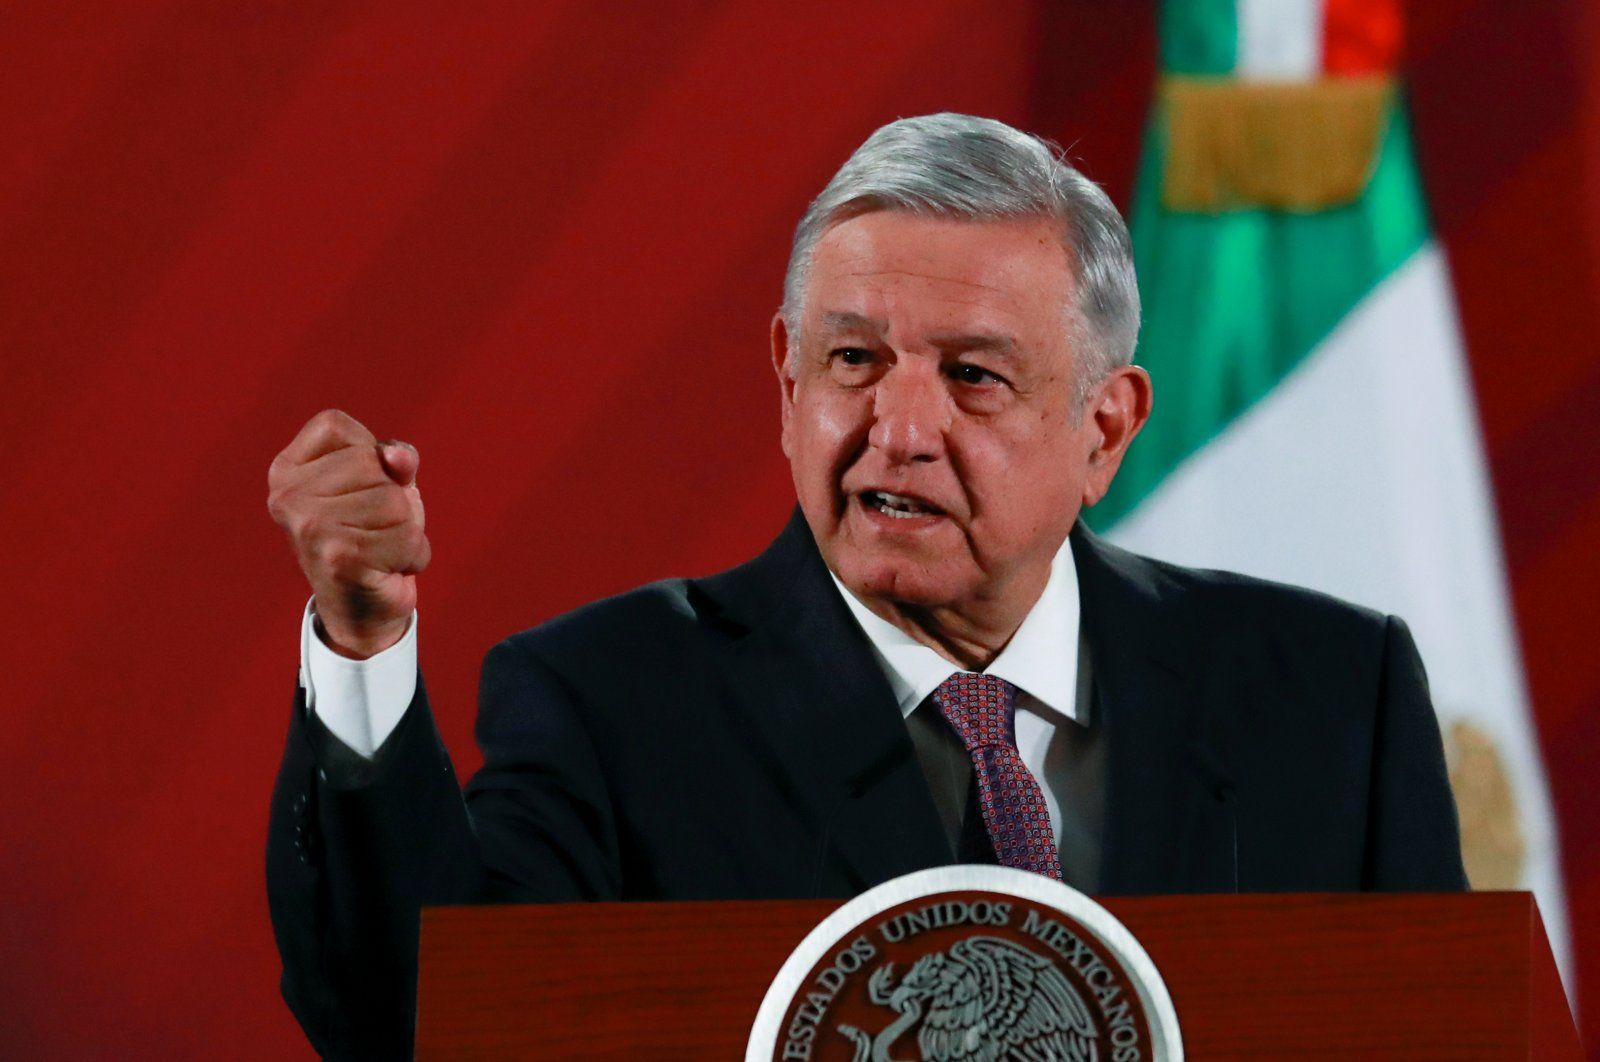 Mexico's President Andres Manuel Lopez Obrador speaks during a news conference at the National Palace in Mexico City, Mexico, March 9, 2020. (Reuters Photo)